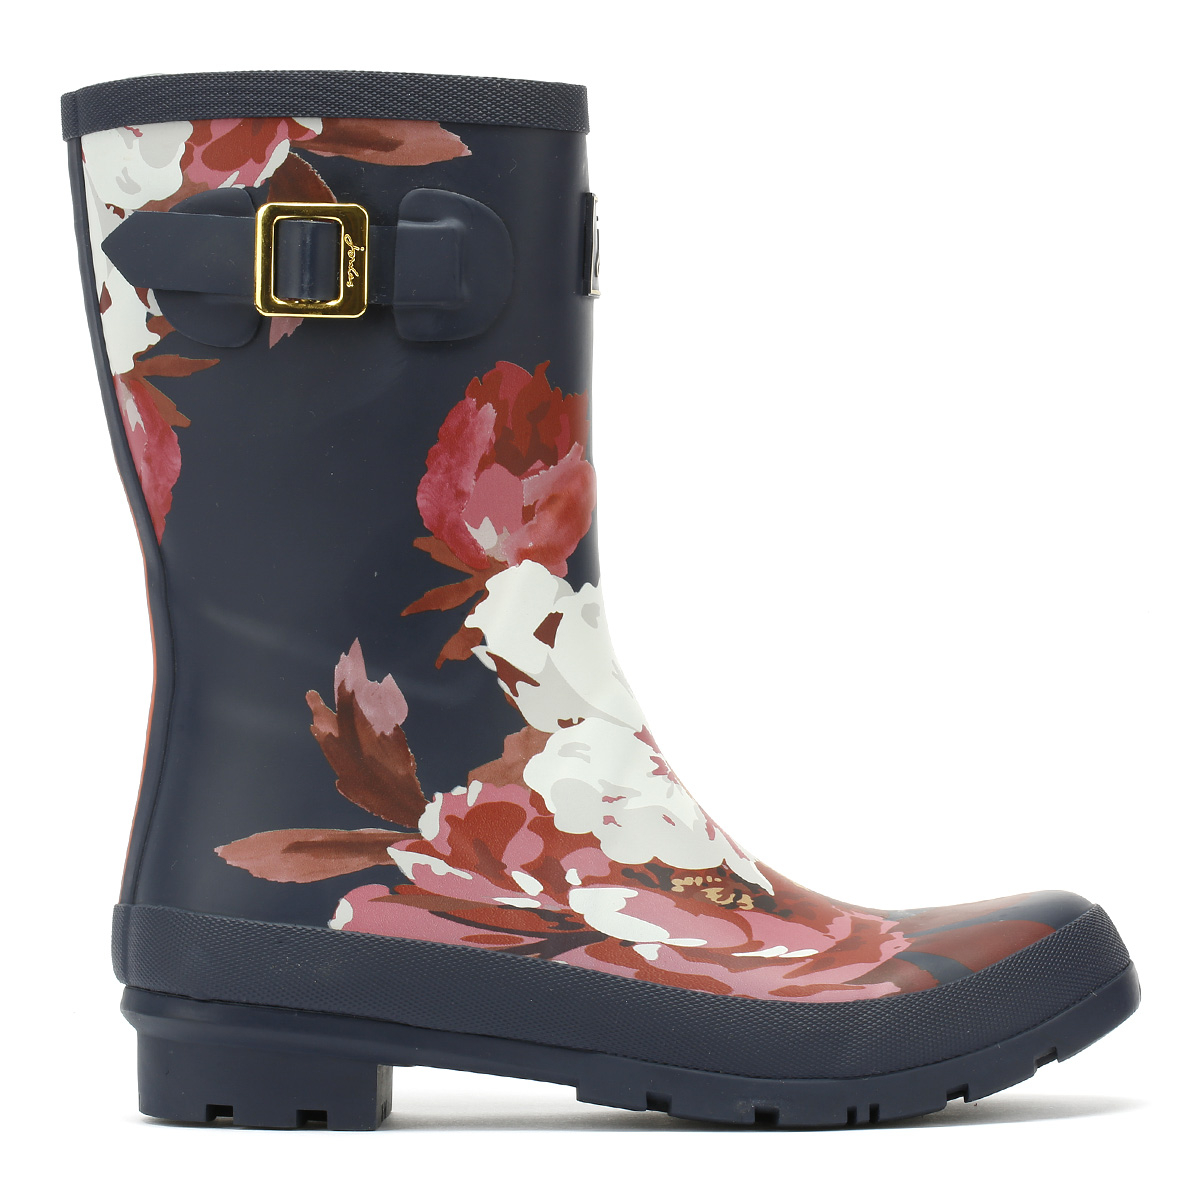 Joules Womens Wellington Boots Navy Bircham Bloom Rubber Wellies Molly Wellies Rubber bad967